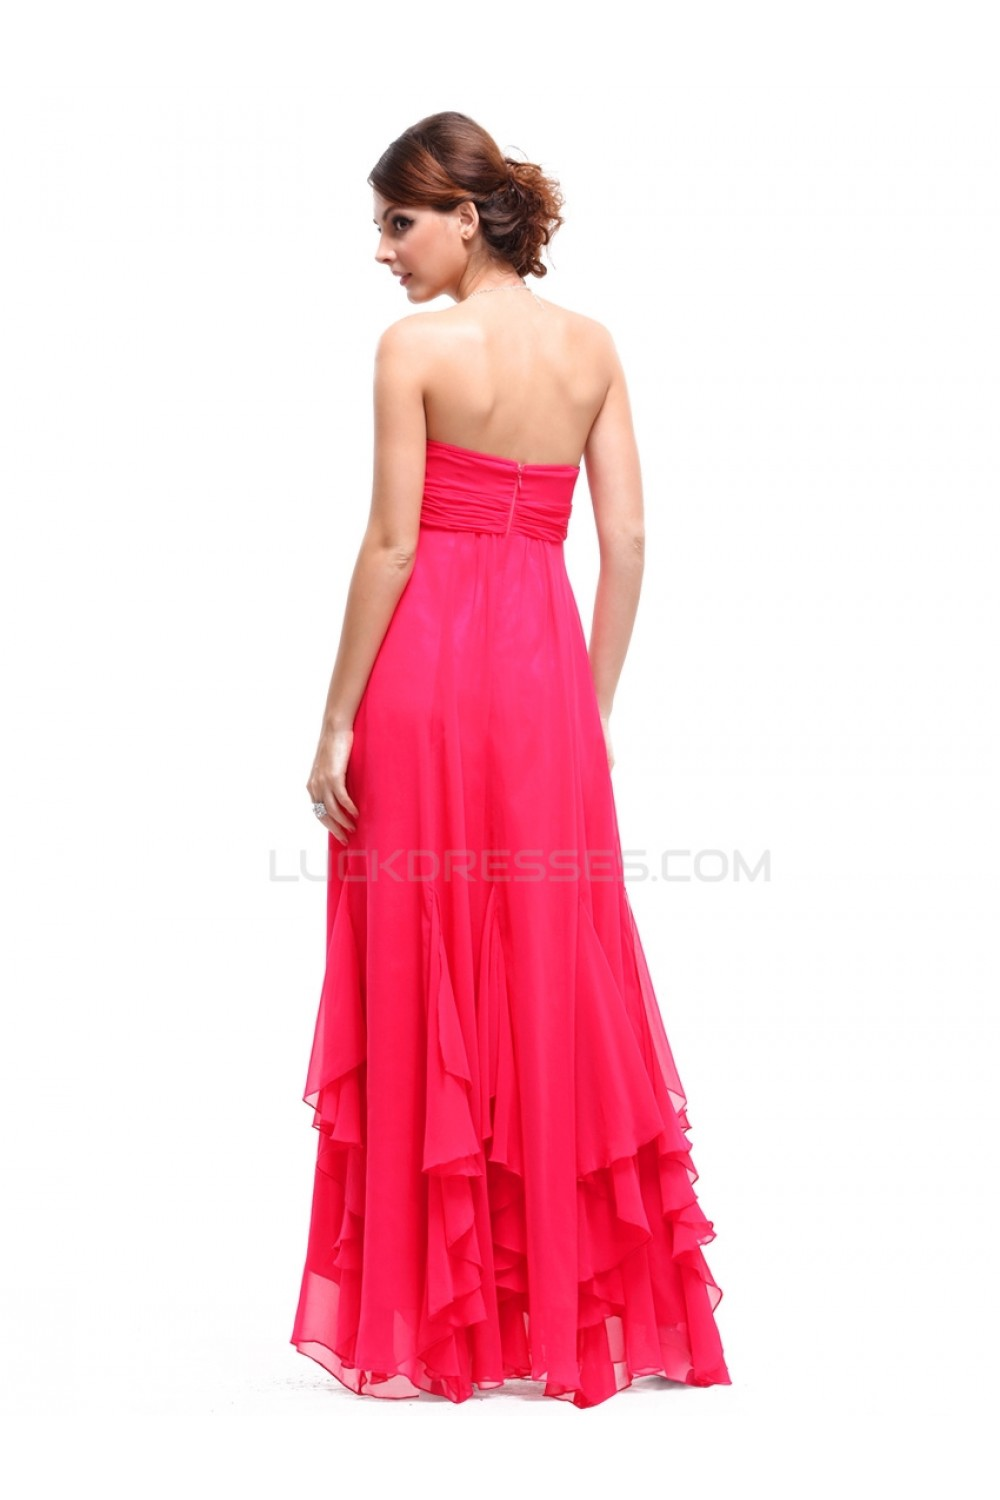 Long Pink Strapless Chiffon Prom Evening Formal Party Dresses ...